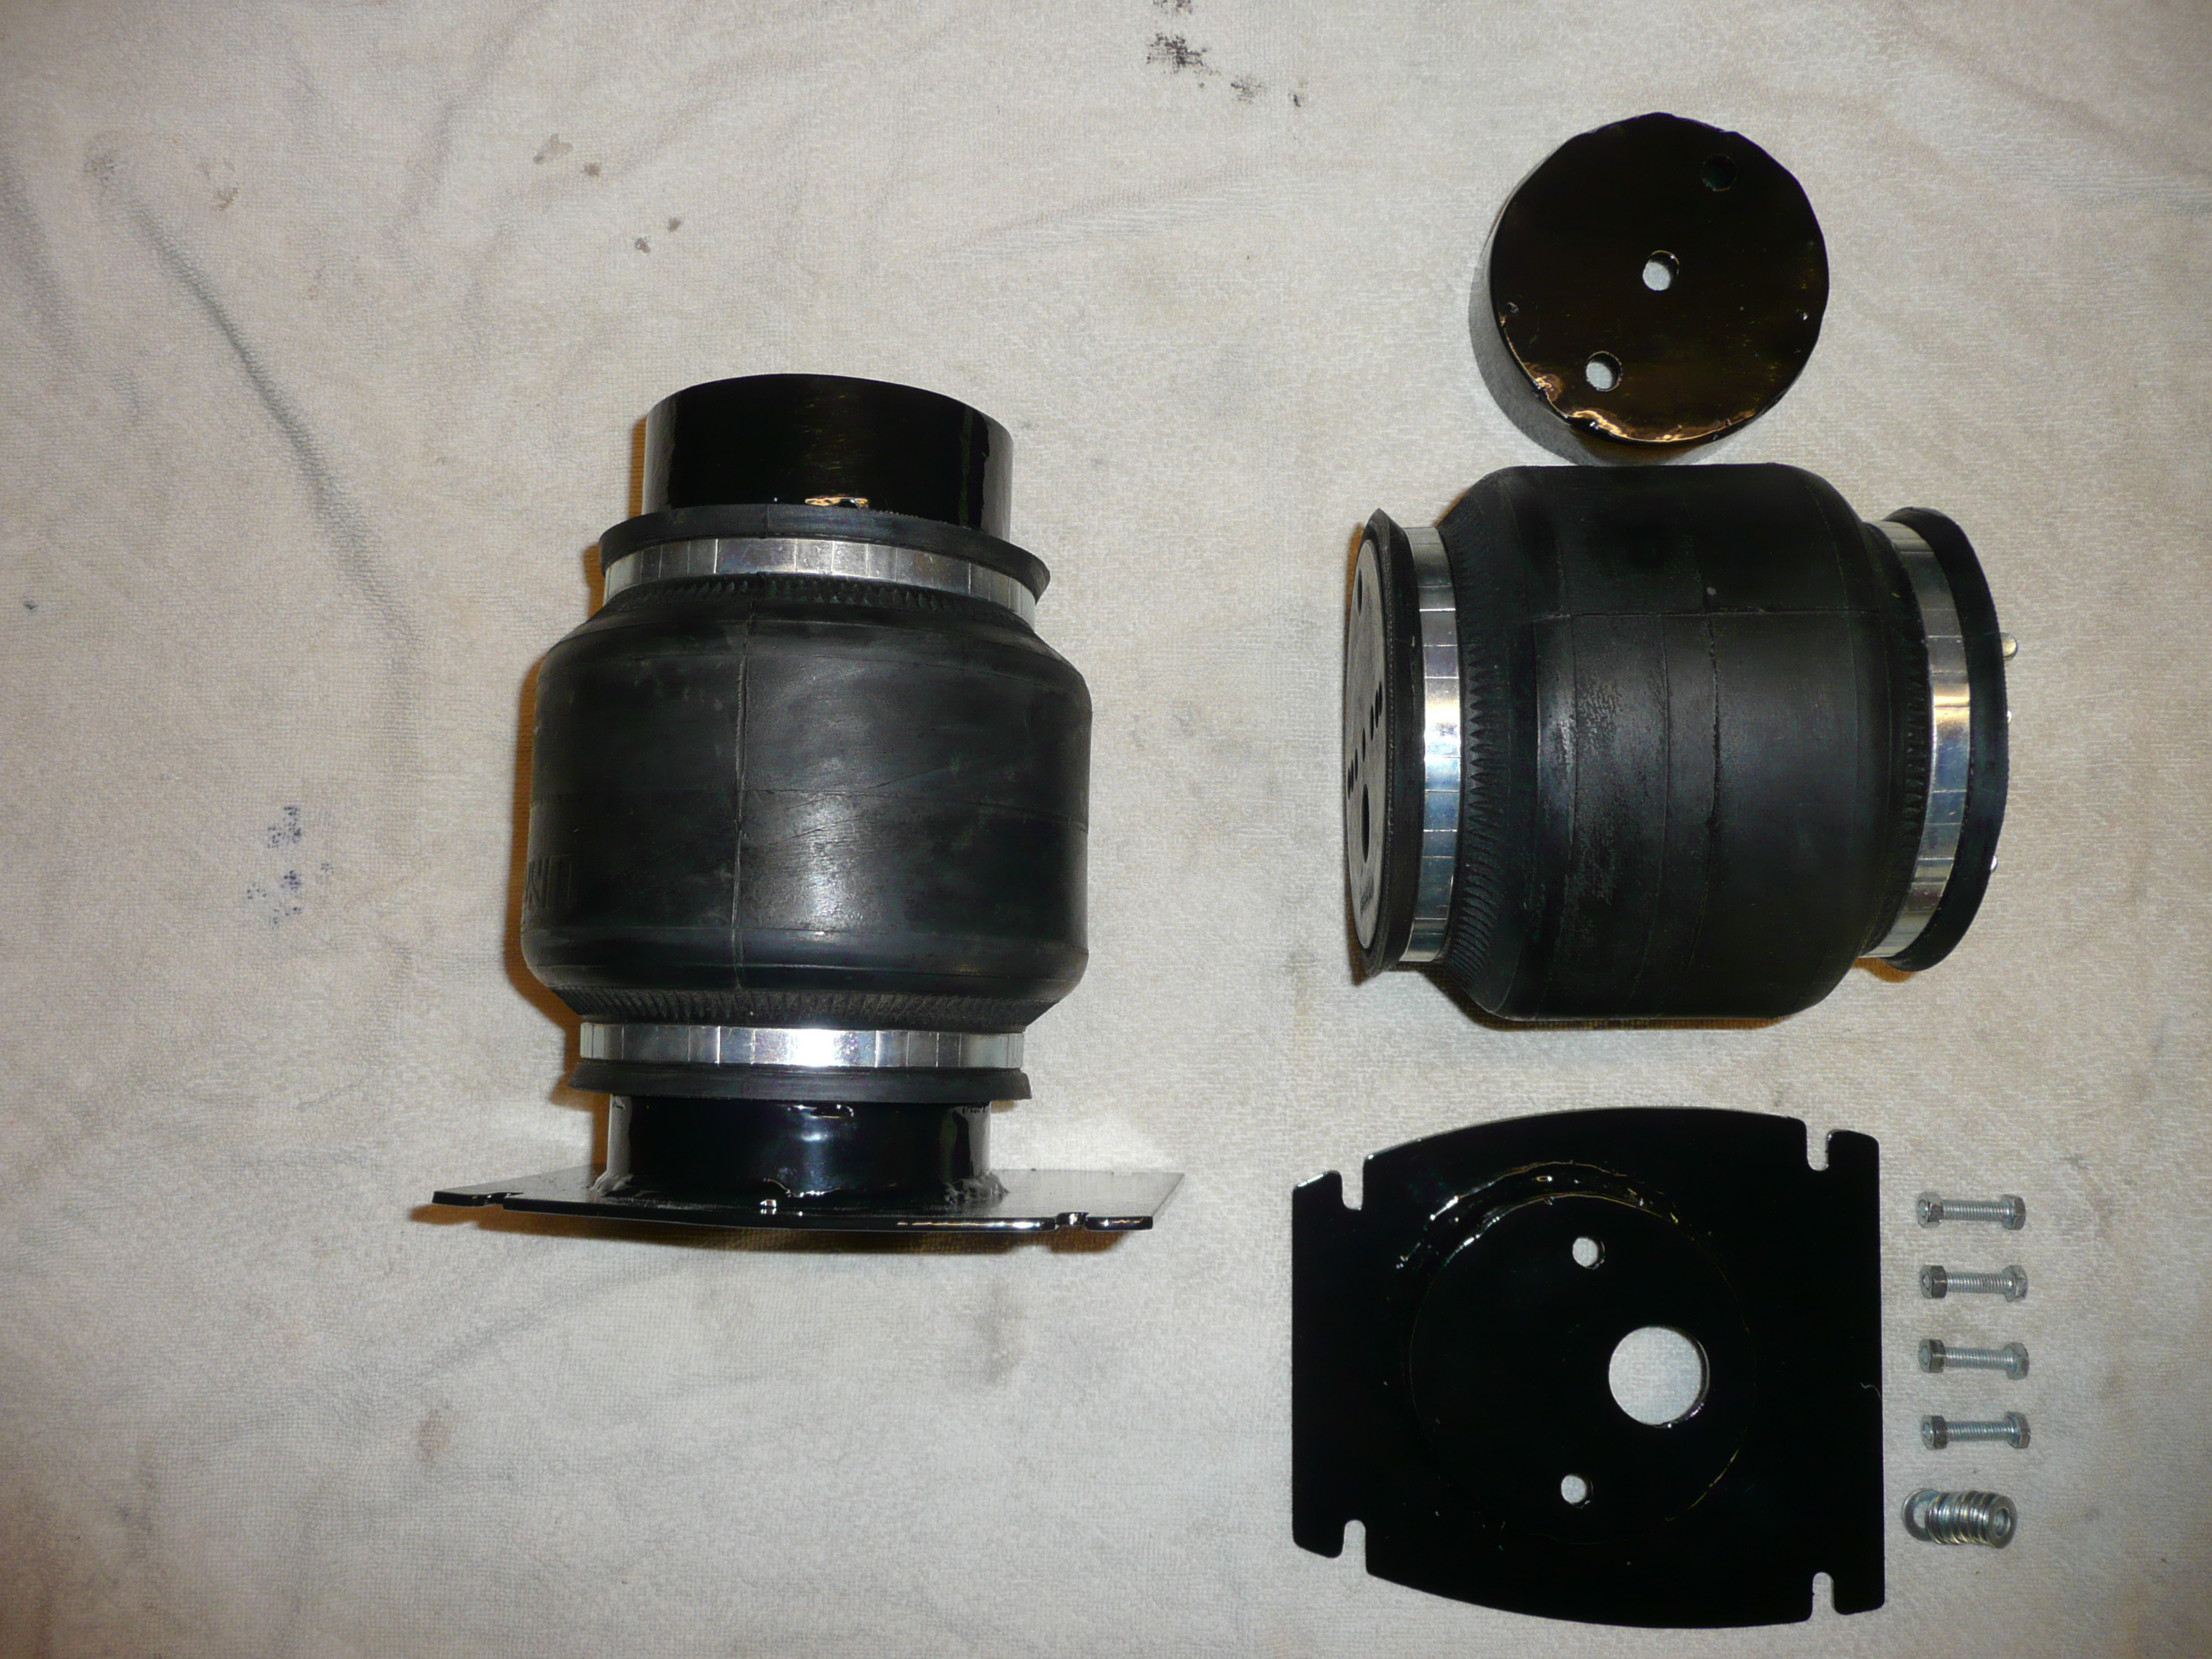 Mercedes W124 rear suspension kit